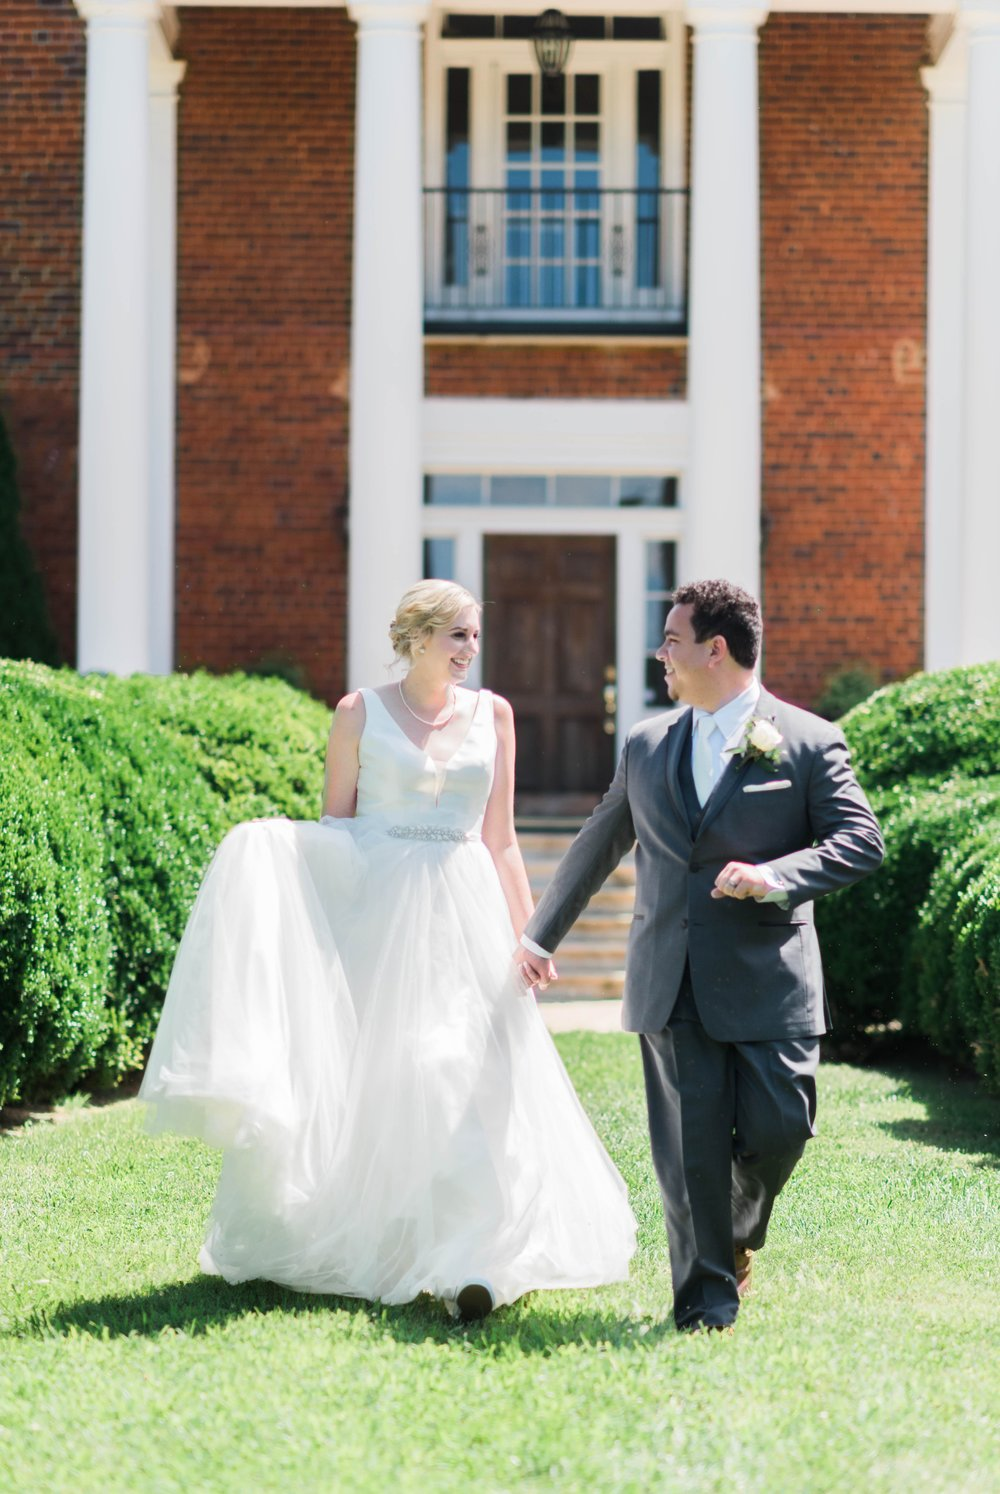 westmanorestate_entwinedevents_lynchburgweddingphotographer_Virginiaweddingphotographer_kateyam 47.jpg